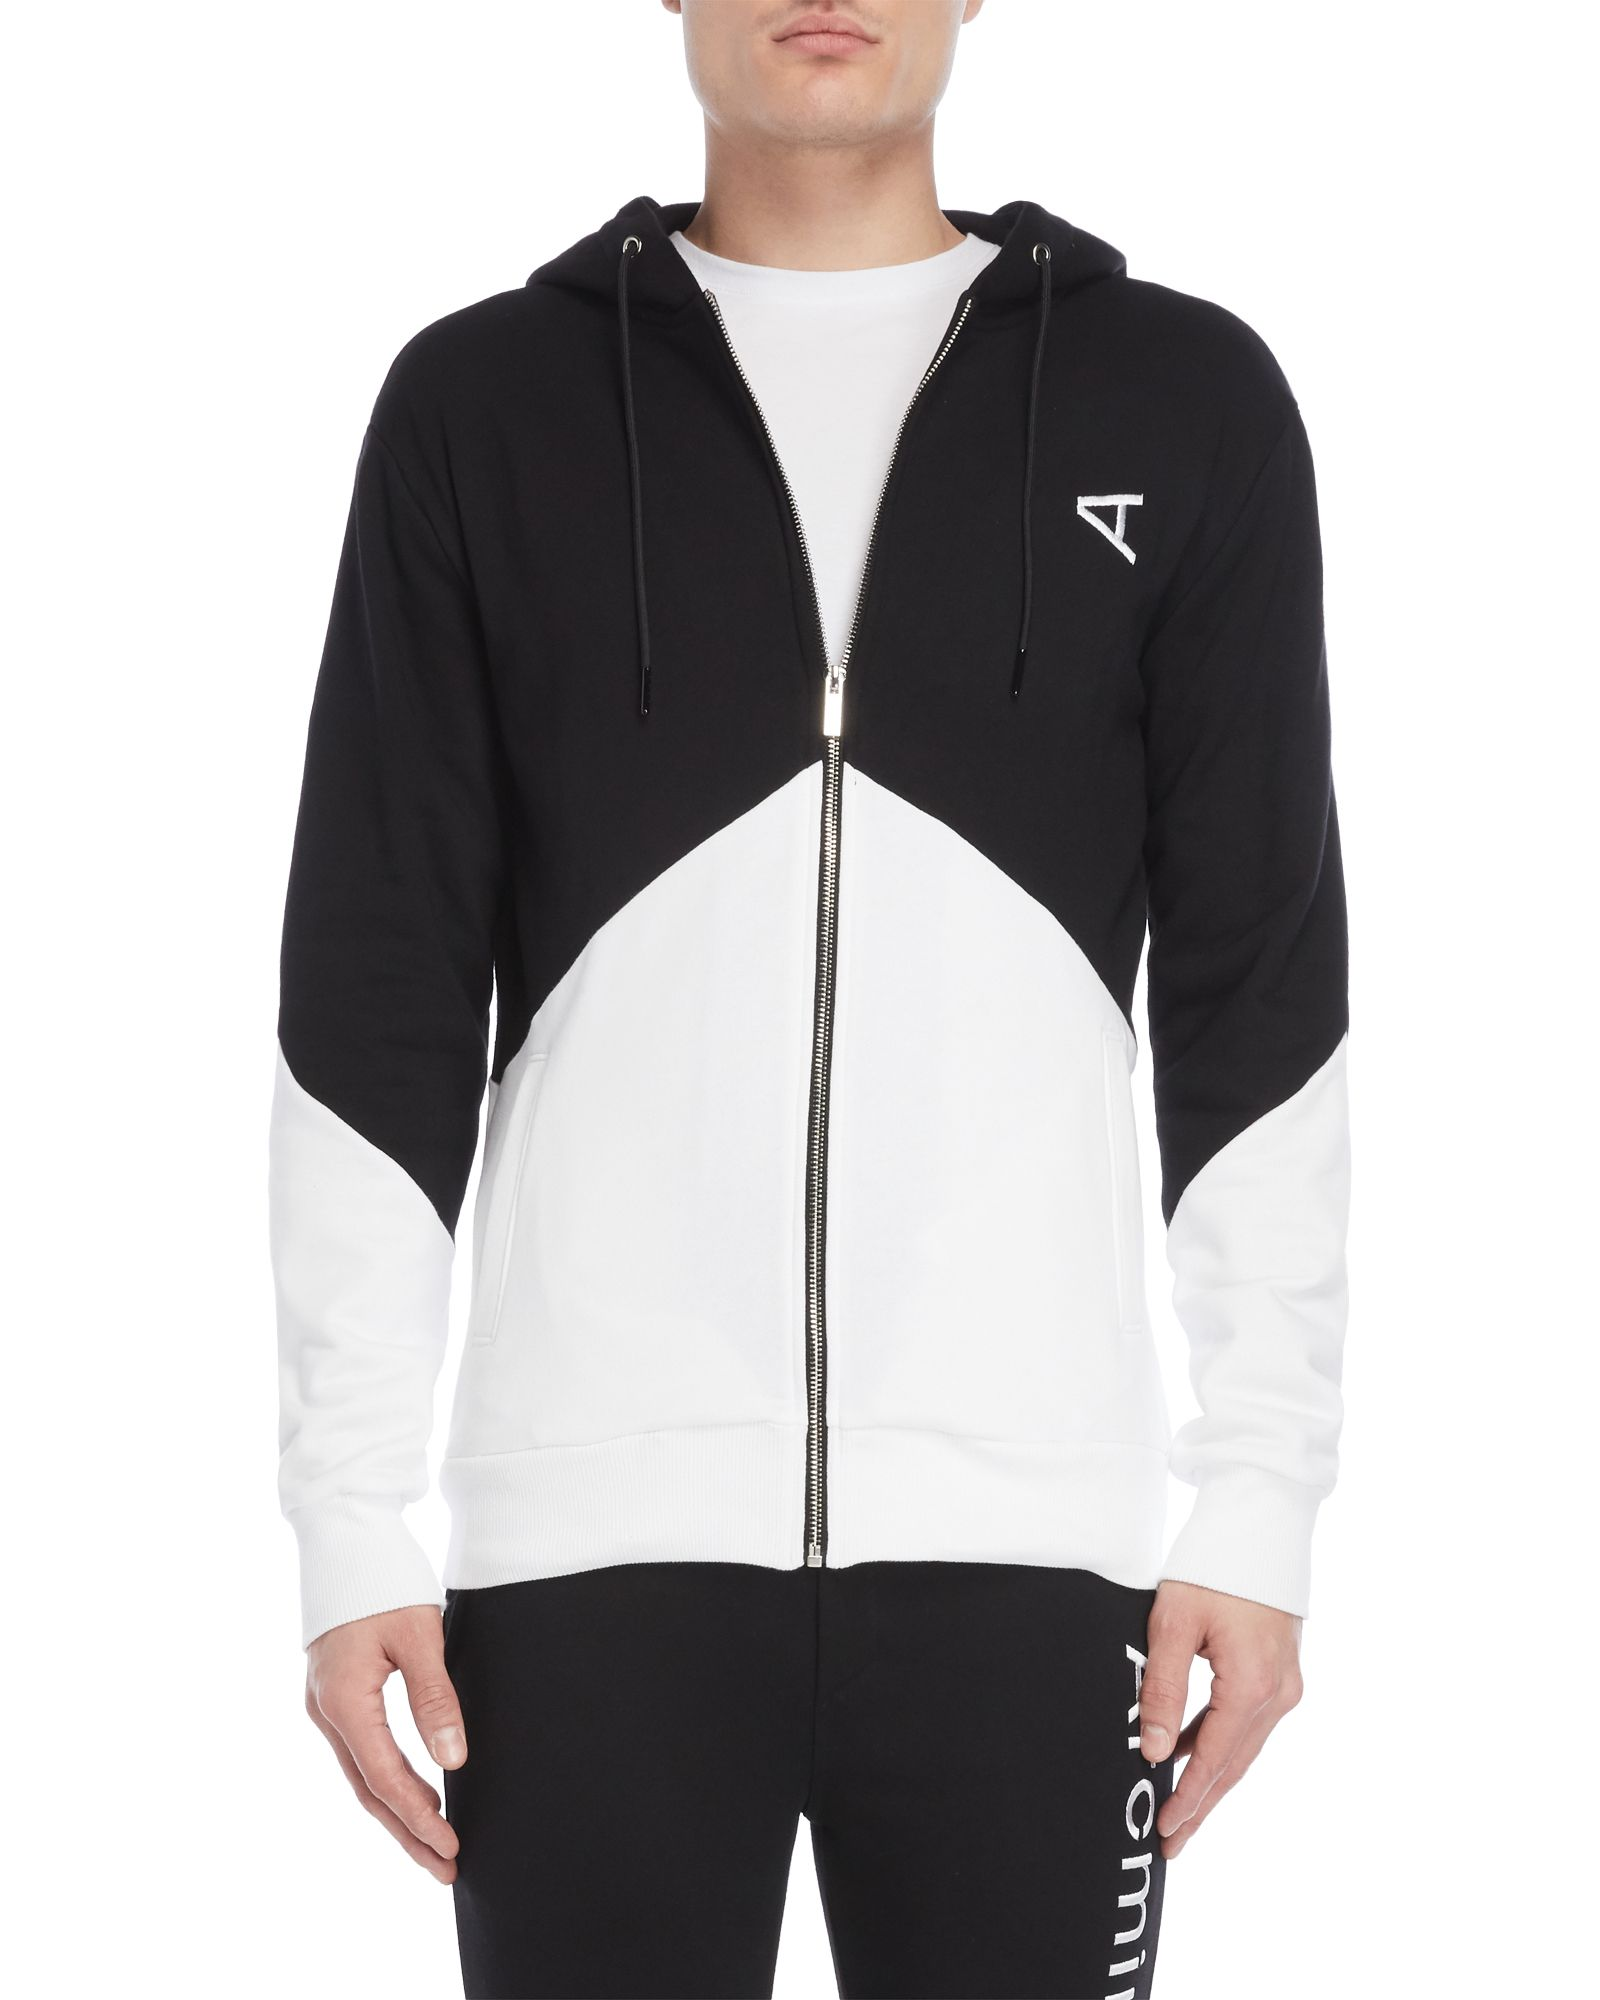 12db33e7e Color Block Zip-Up Hoodie | *Apparel & Accessories* | Hooded jacket ...